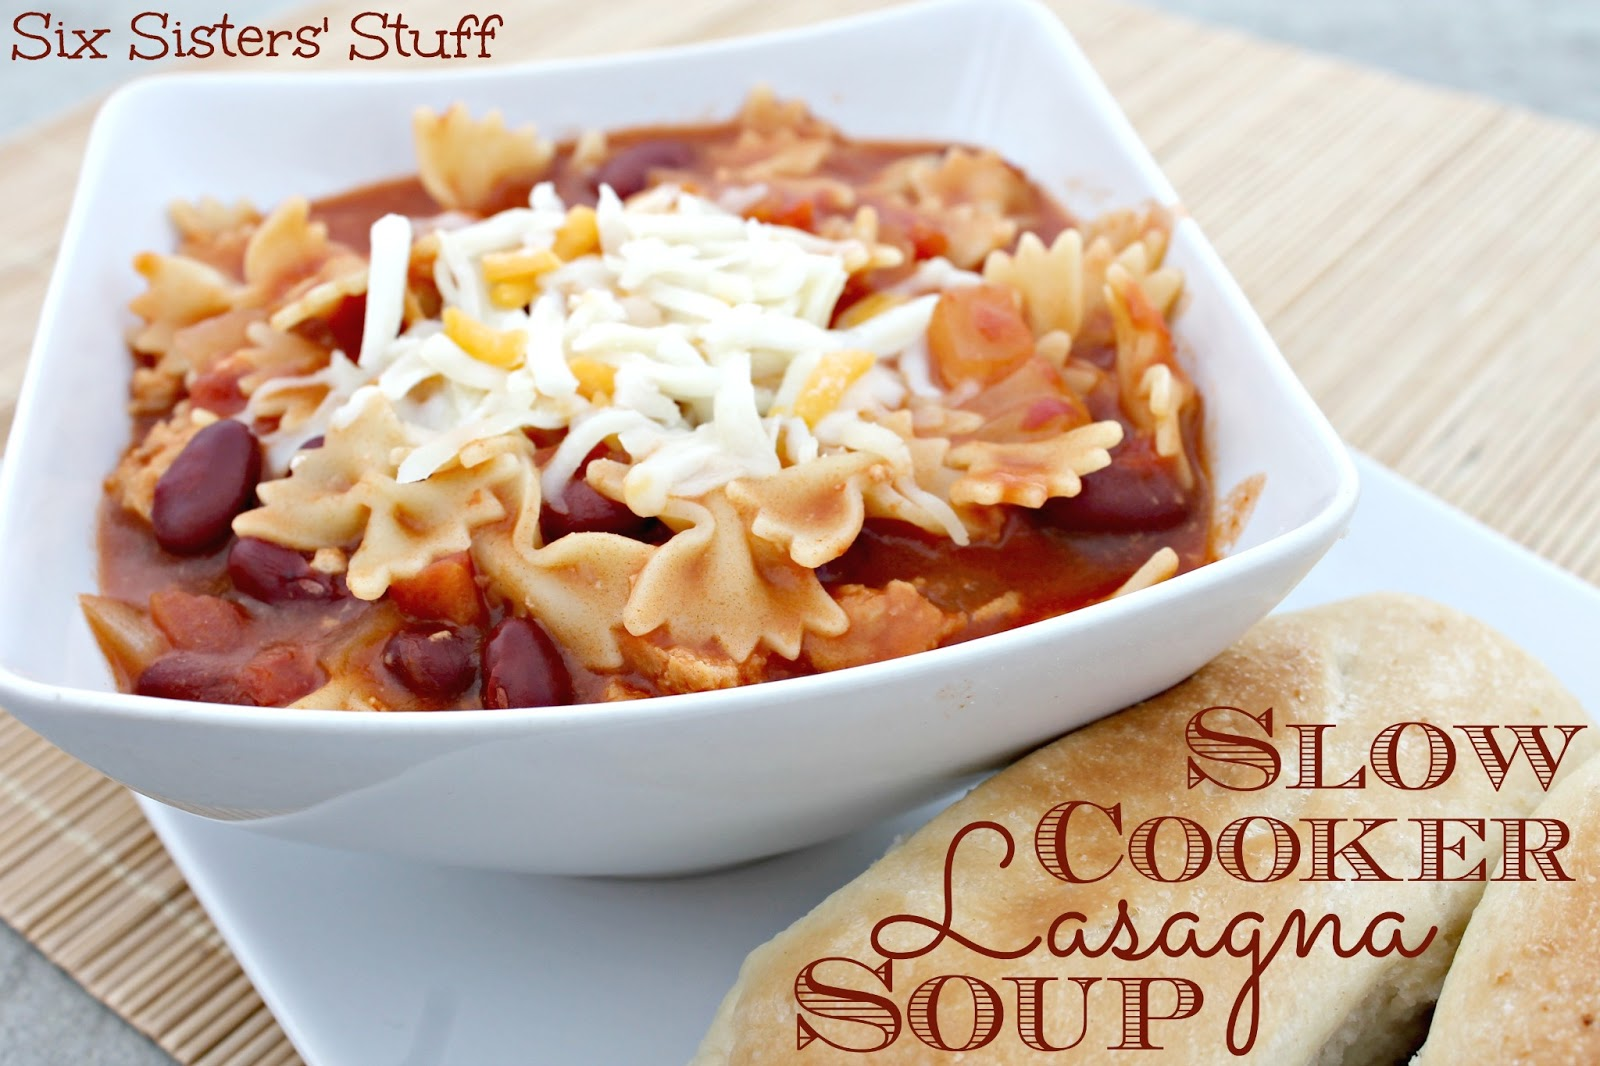 Slow Cooker Lasagna Soup Recipe | Six Sisters' Stuff